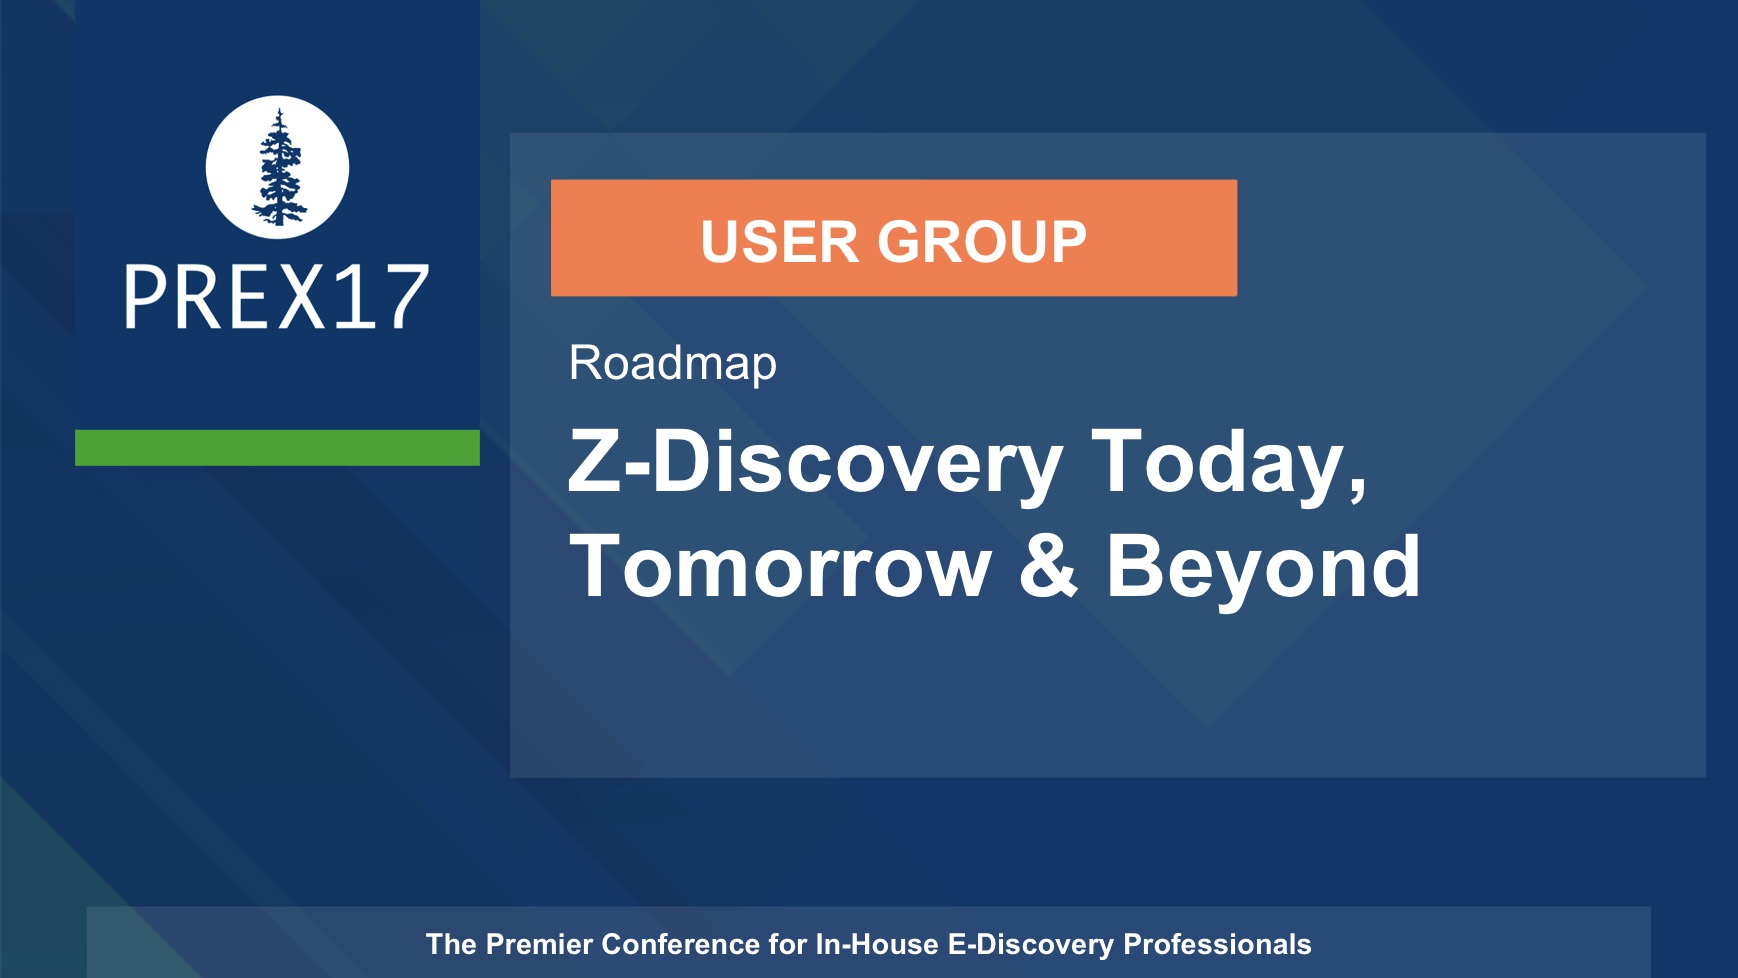 USER GROUP (Roadmap) Z-Discovery Today, Tomorrow & Beyond